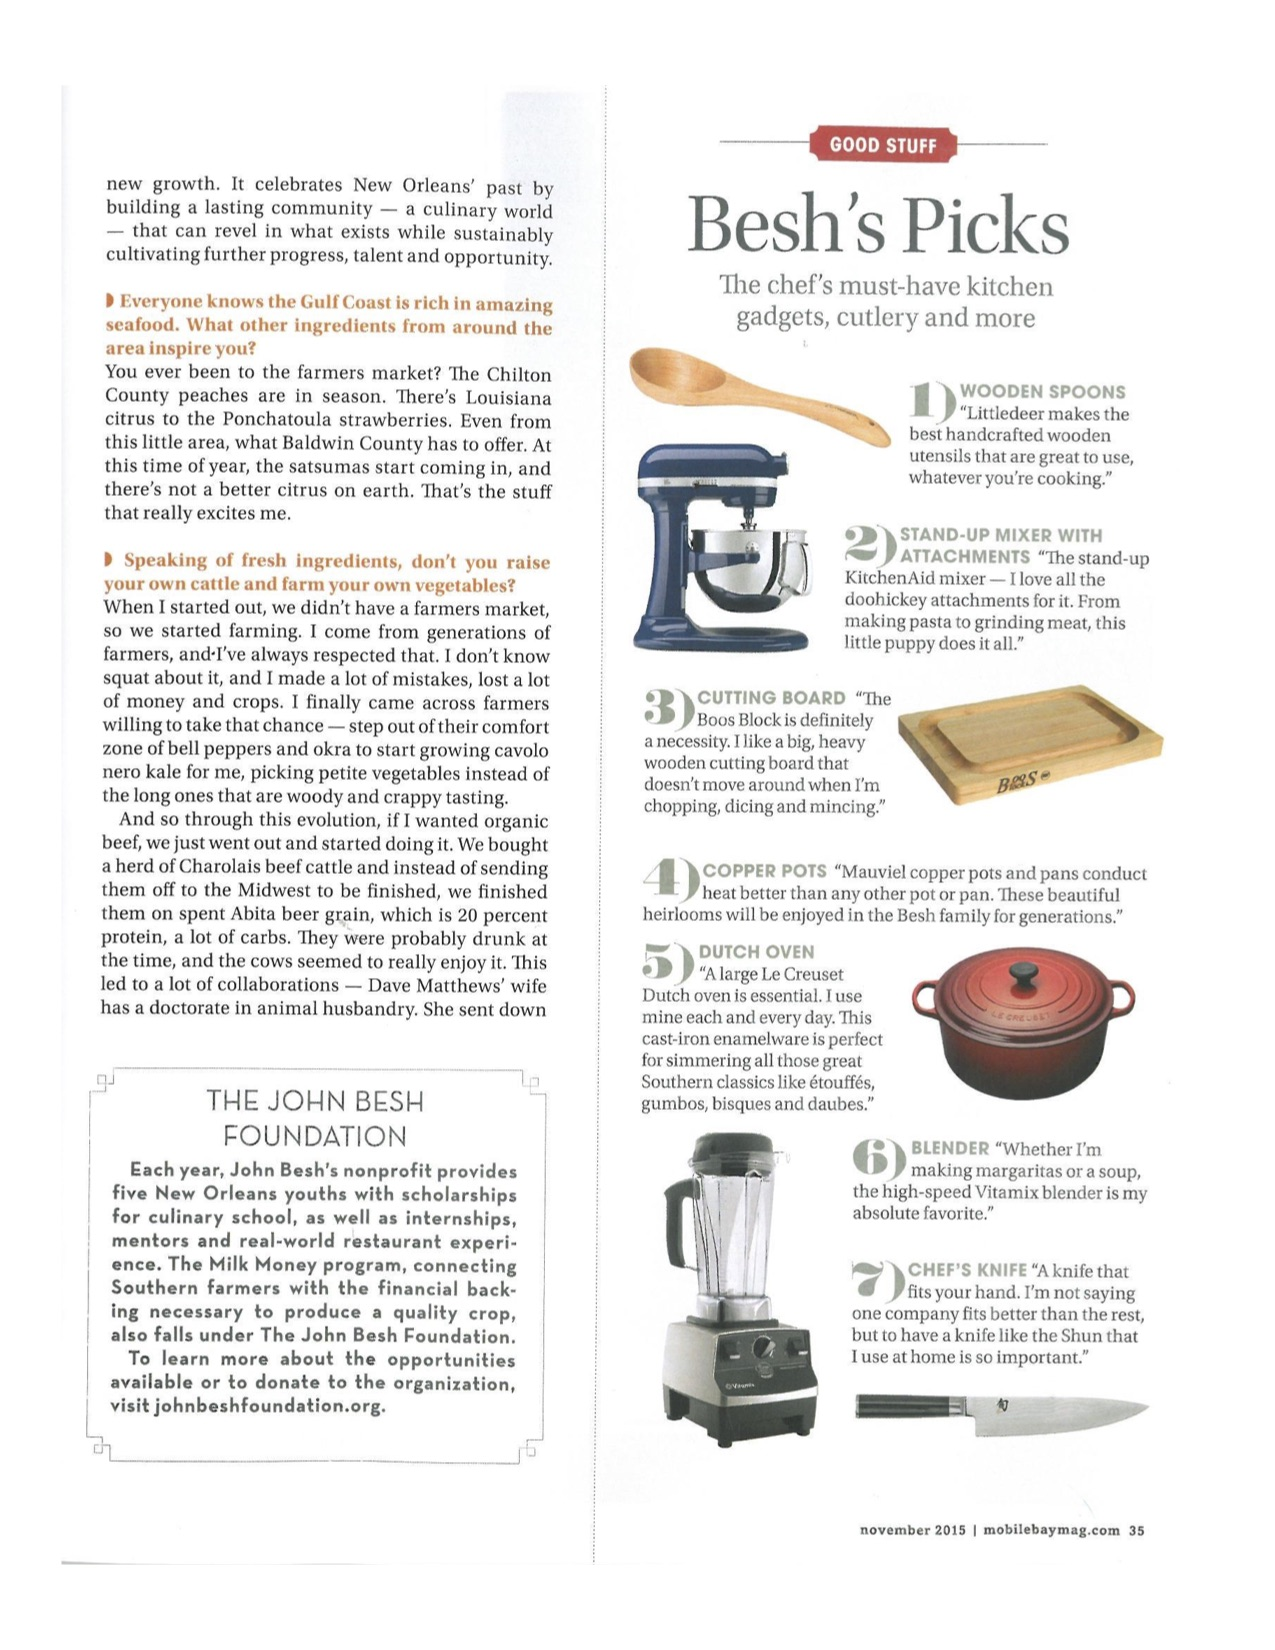 5 Mobile Bay Magazine_John Besh_Nov 2015(2).jpg